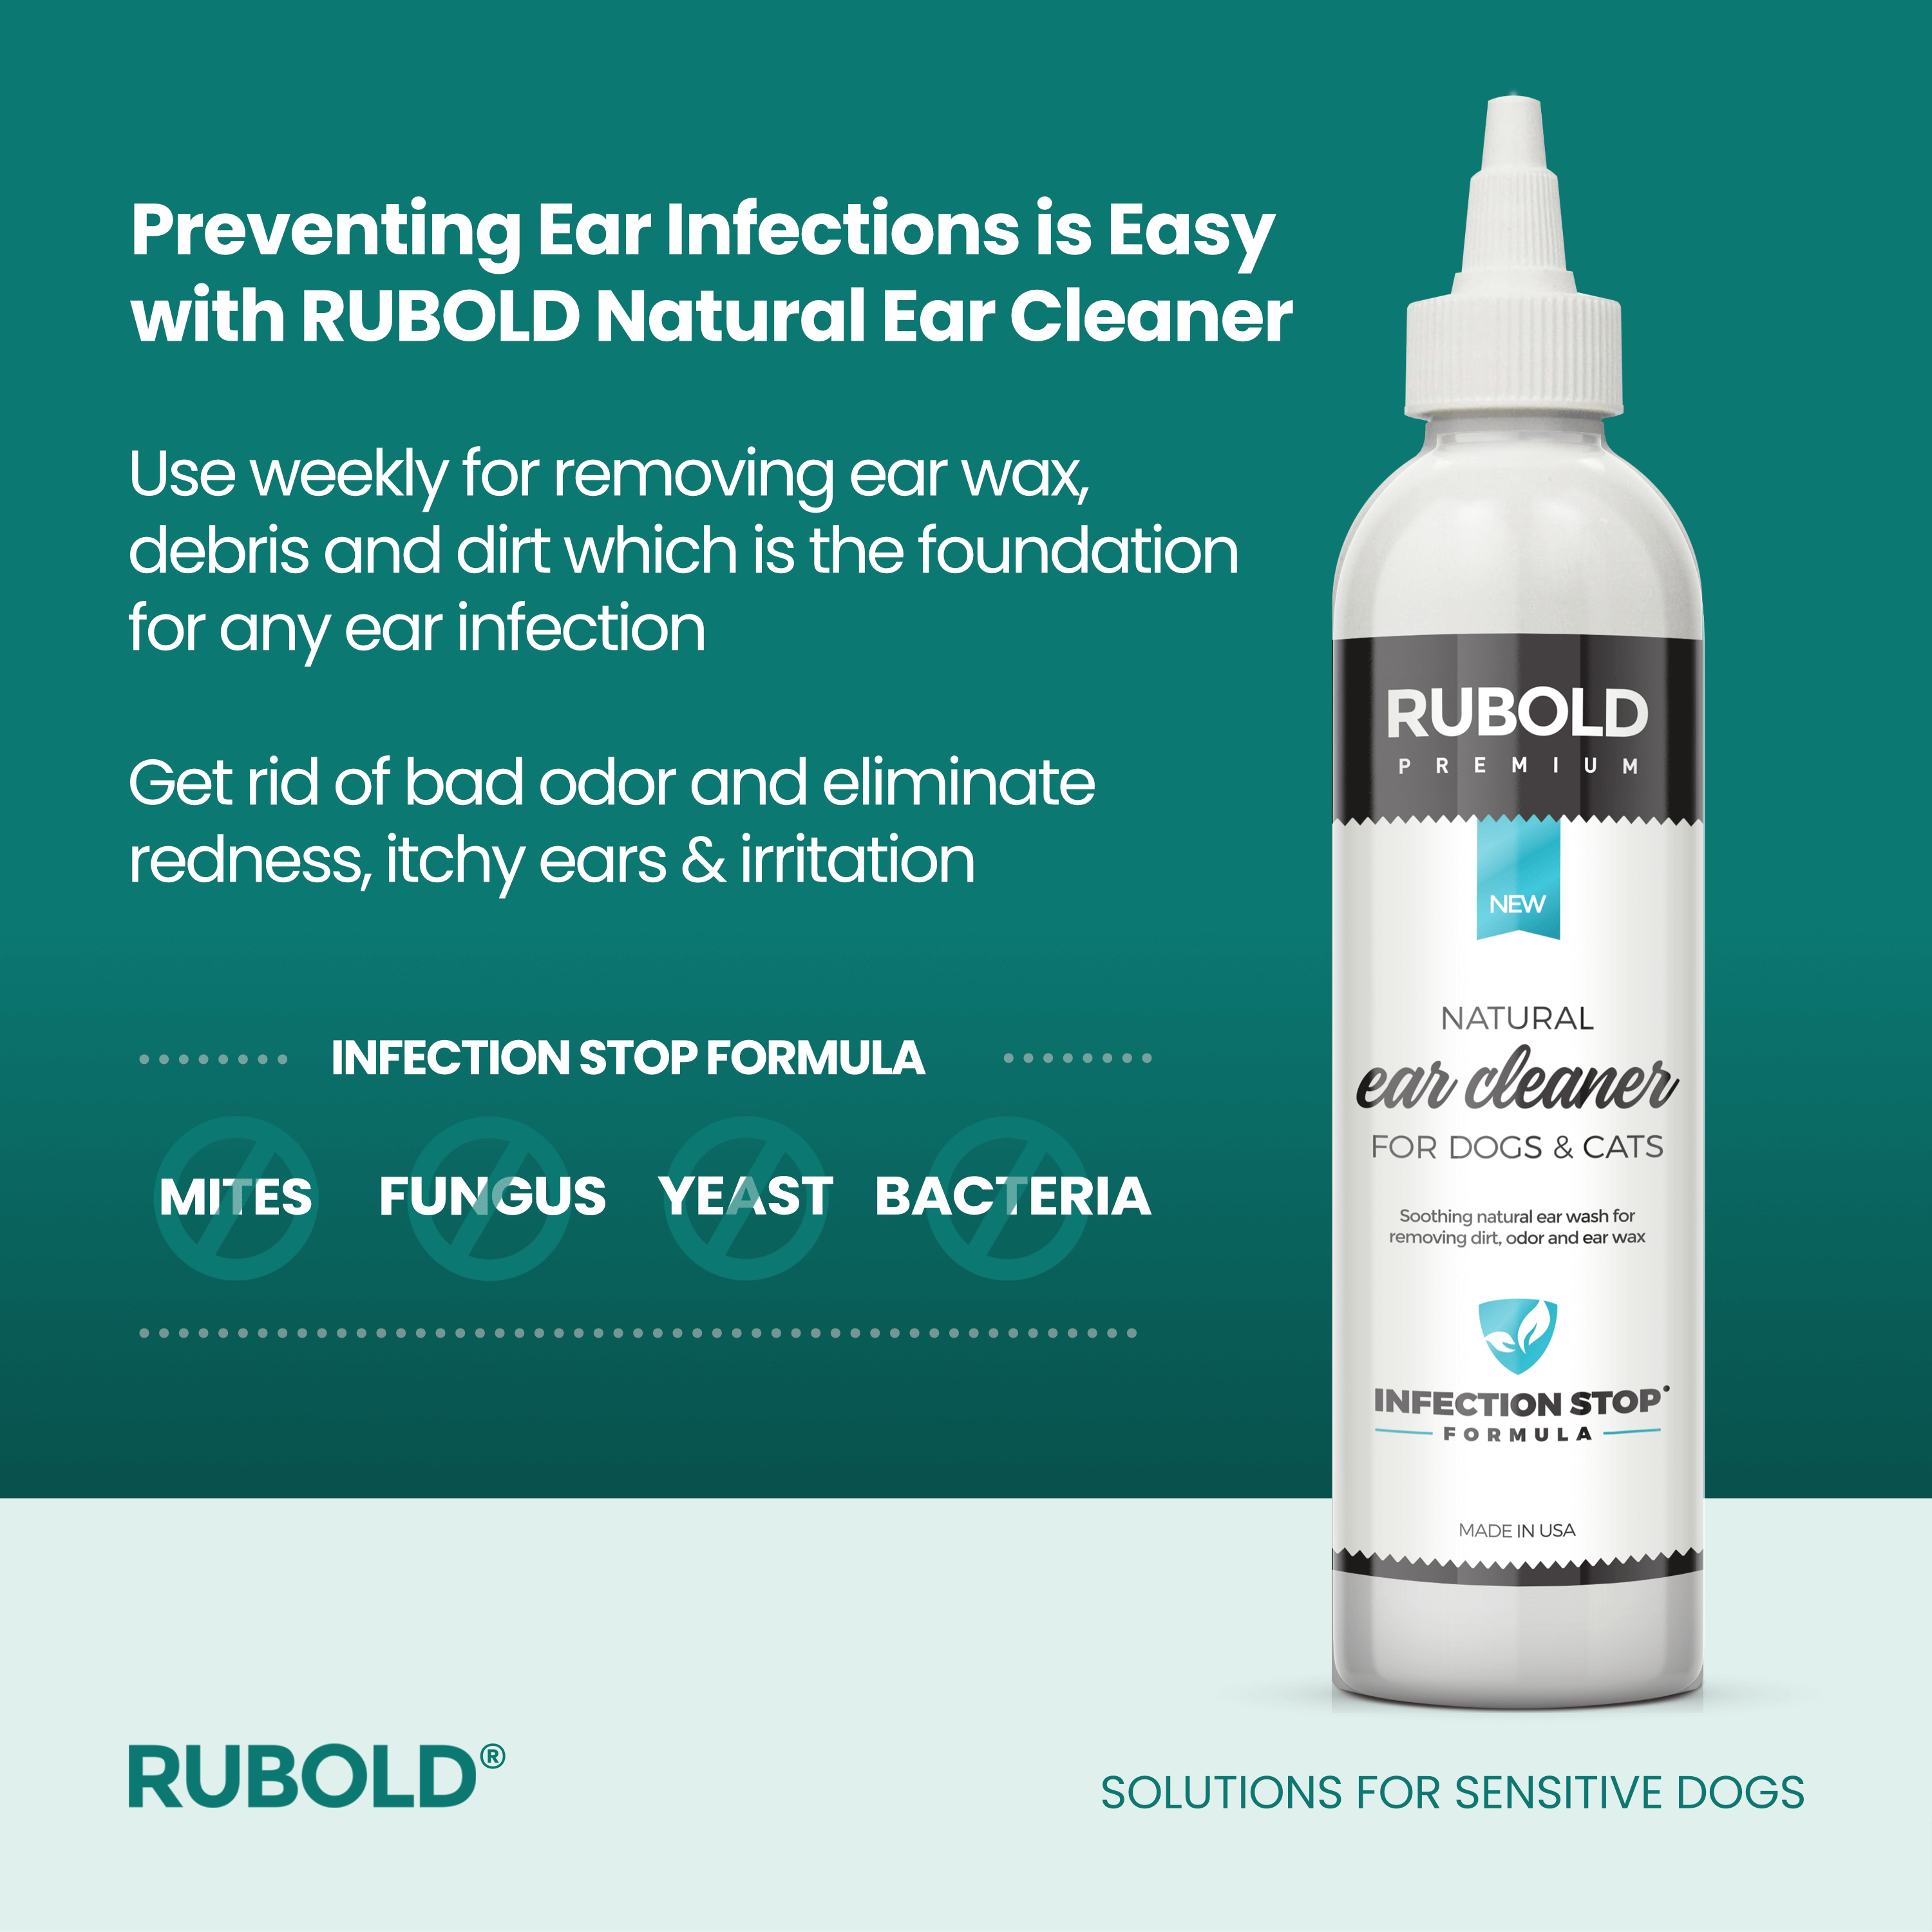 Natural Ear Cleaner for Pets - dog grooming tools and dog care products